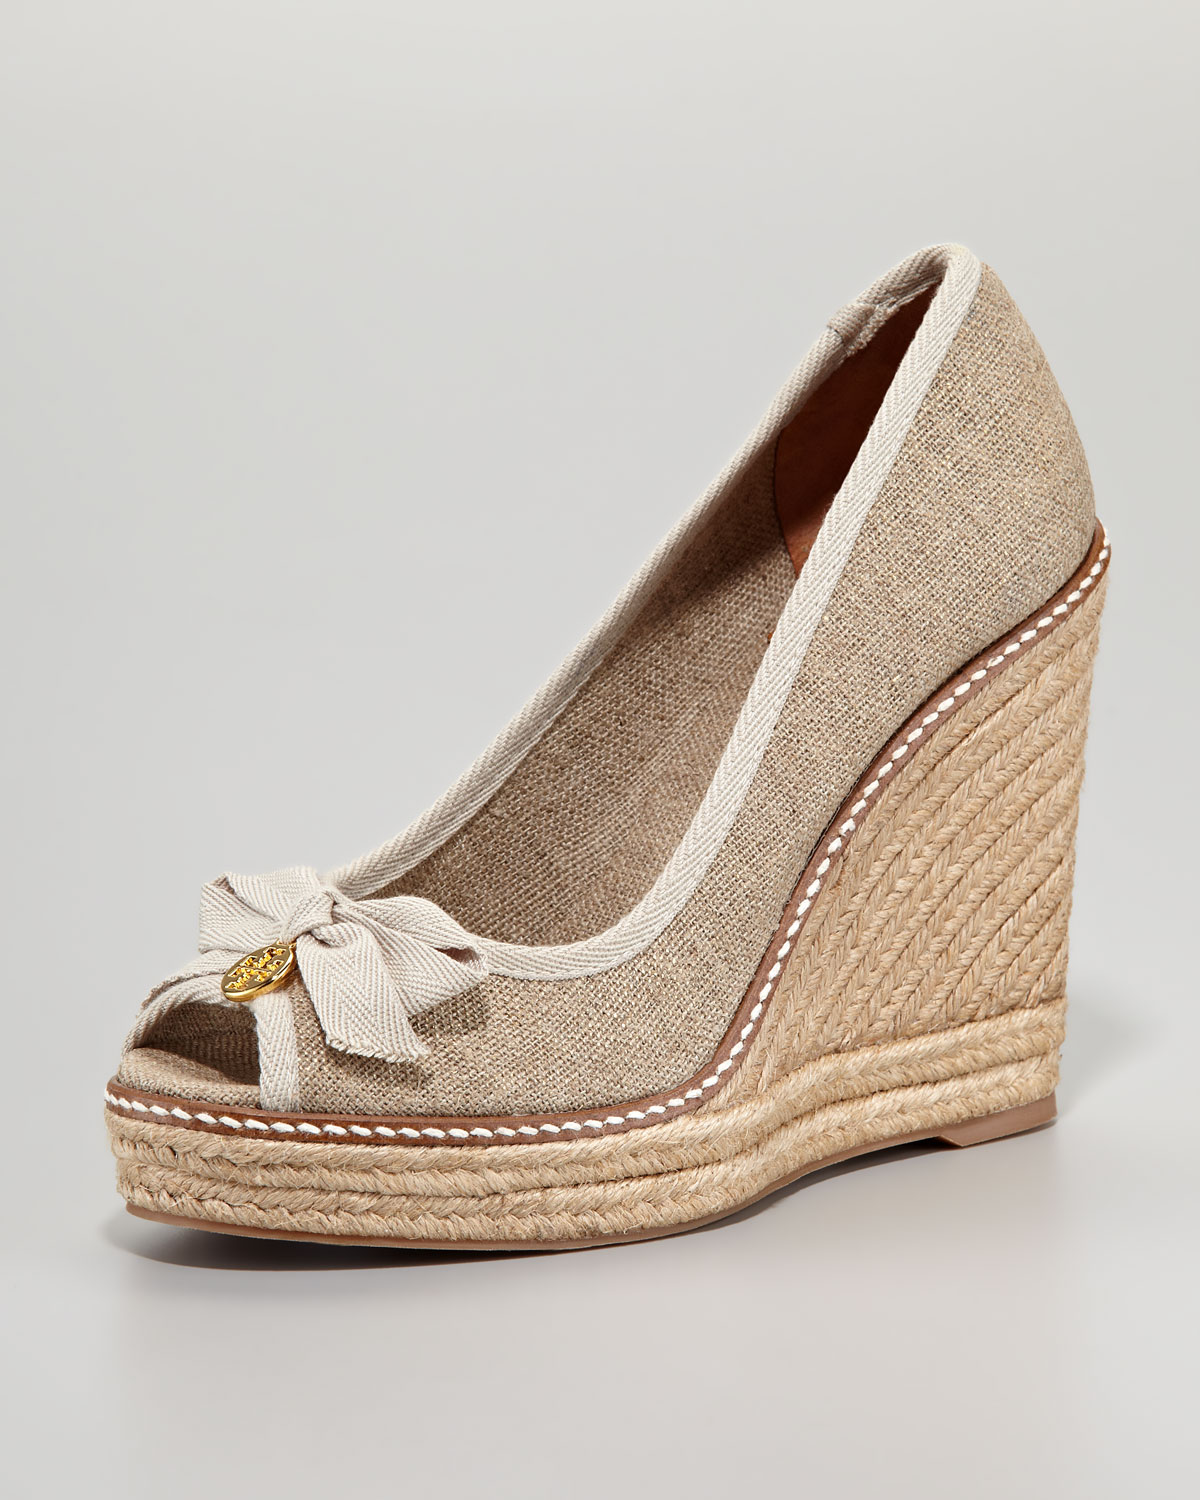 Gold Wedge Dress Shoes